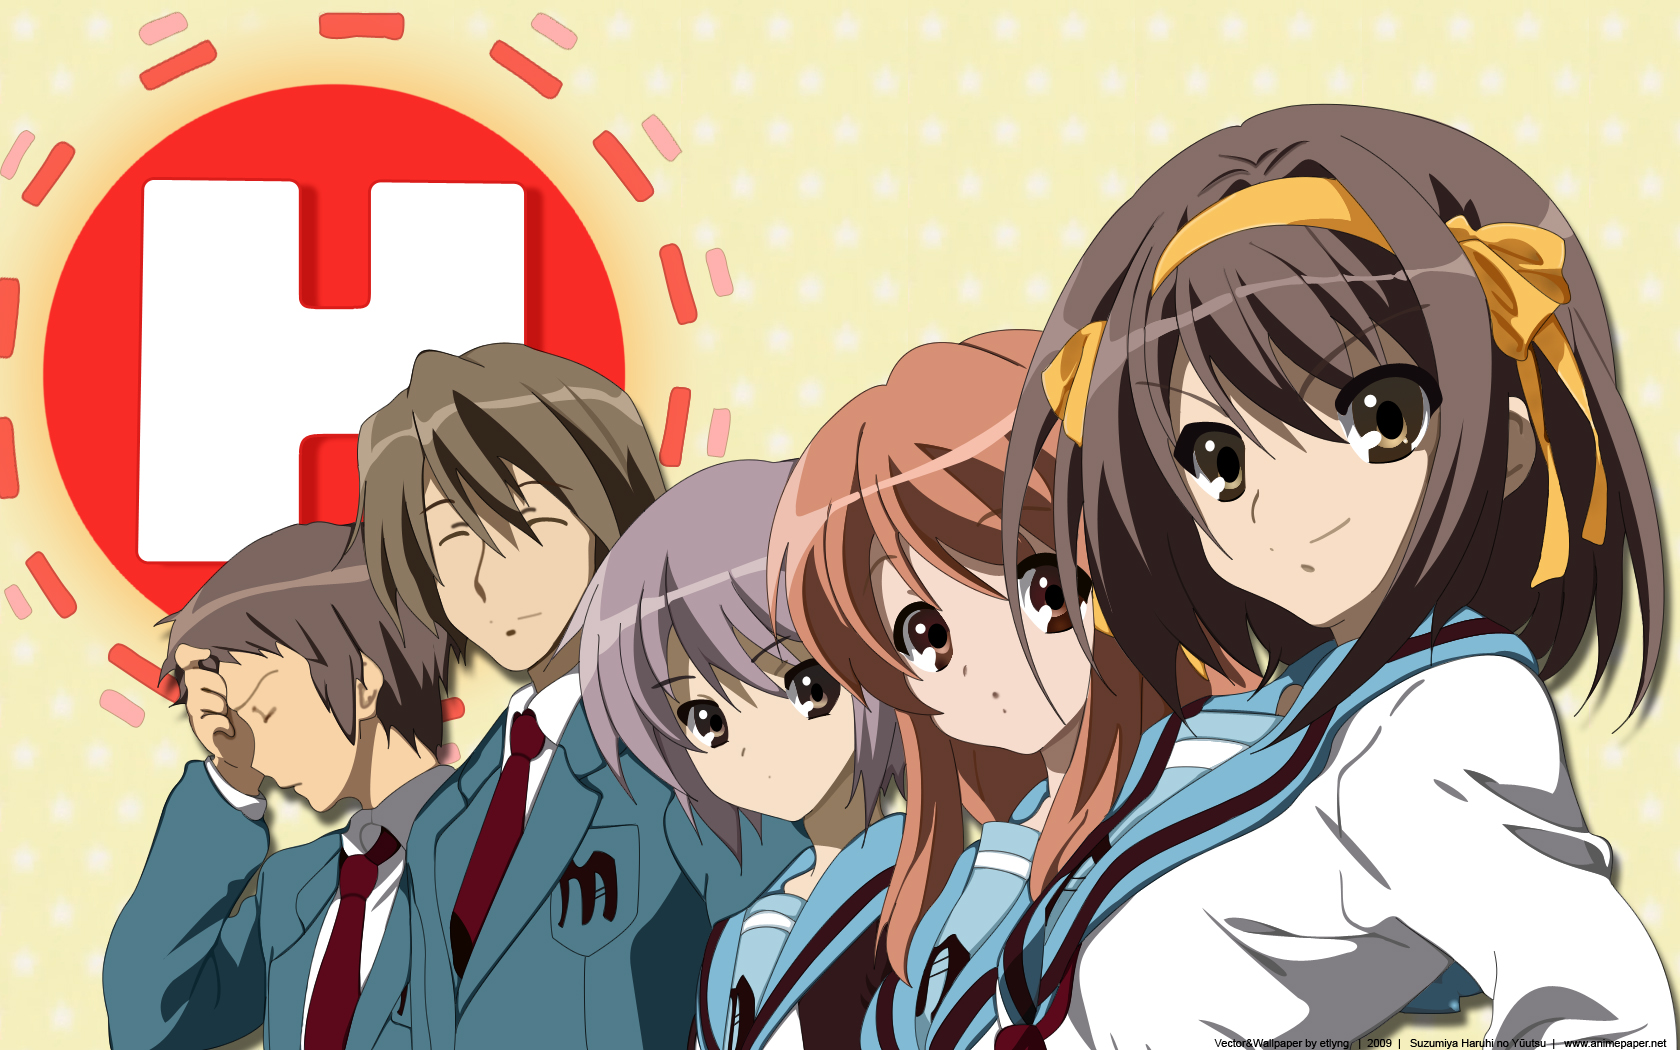 Anime - The Melancholy Of Haruhi Suzumiya Anime Wallpaper